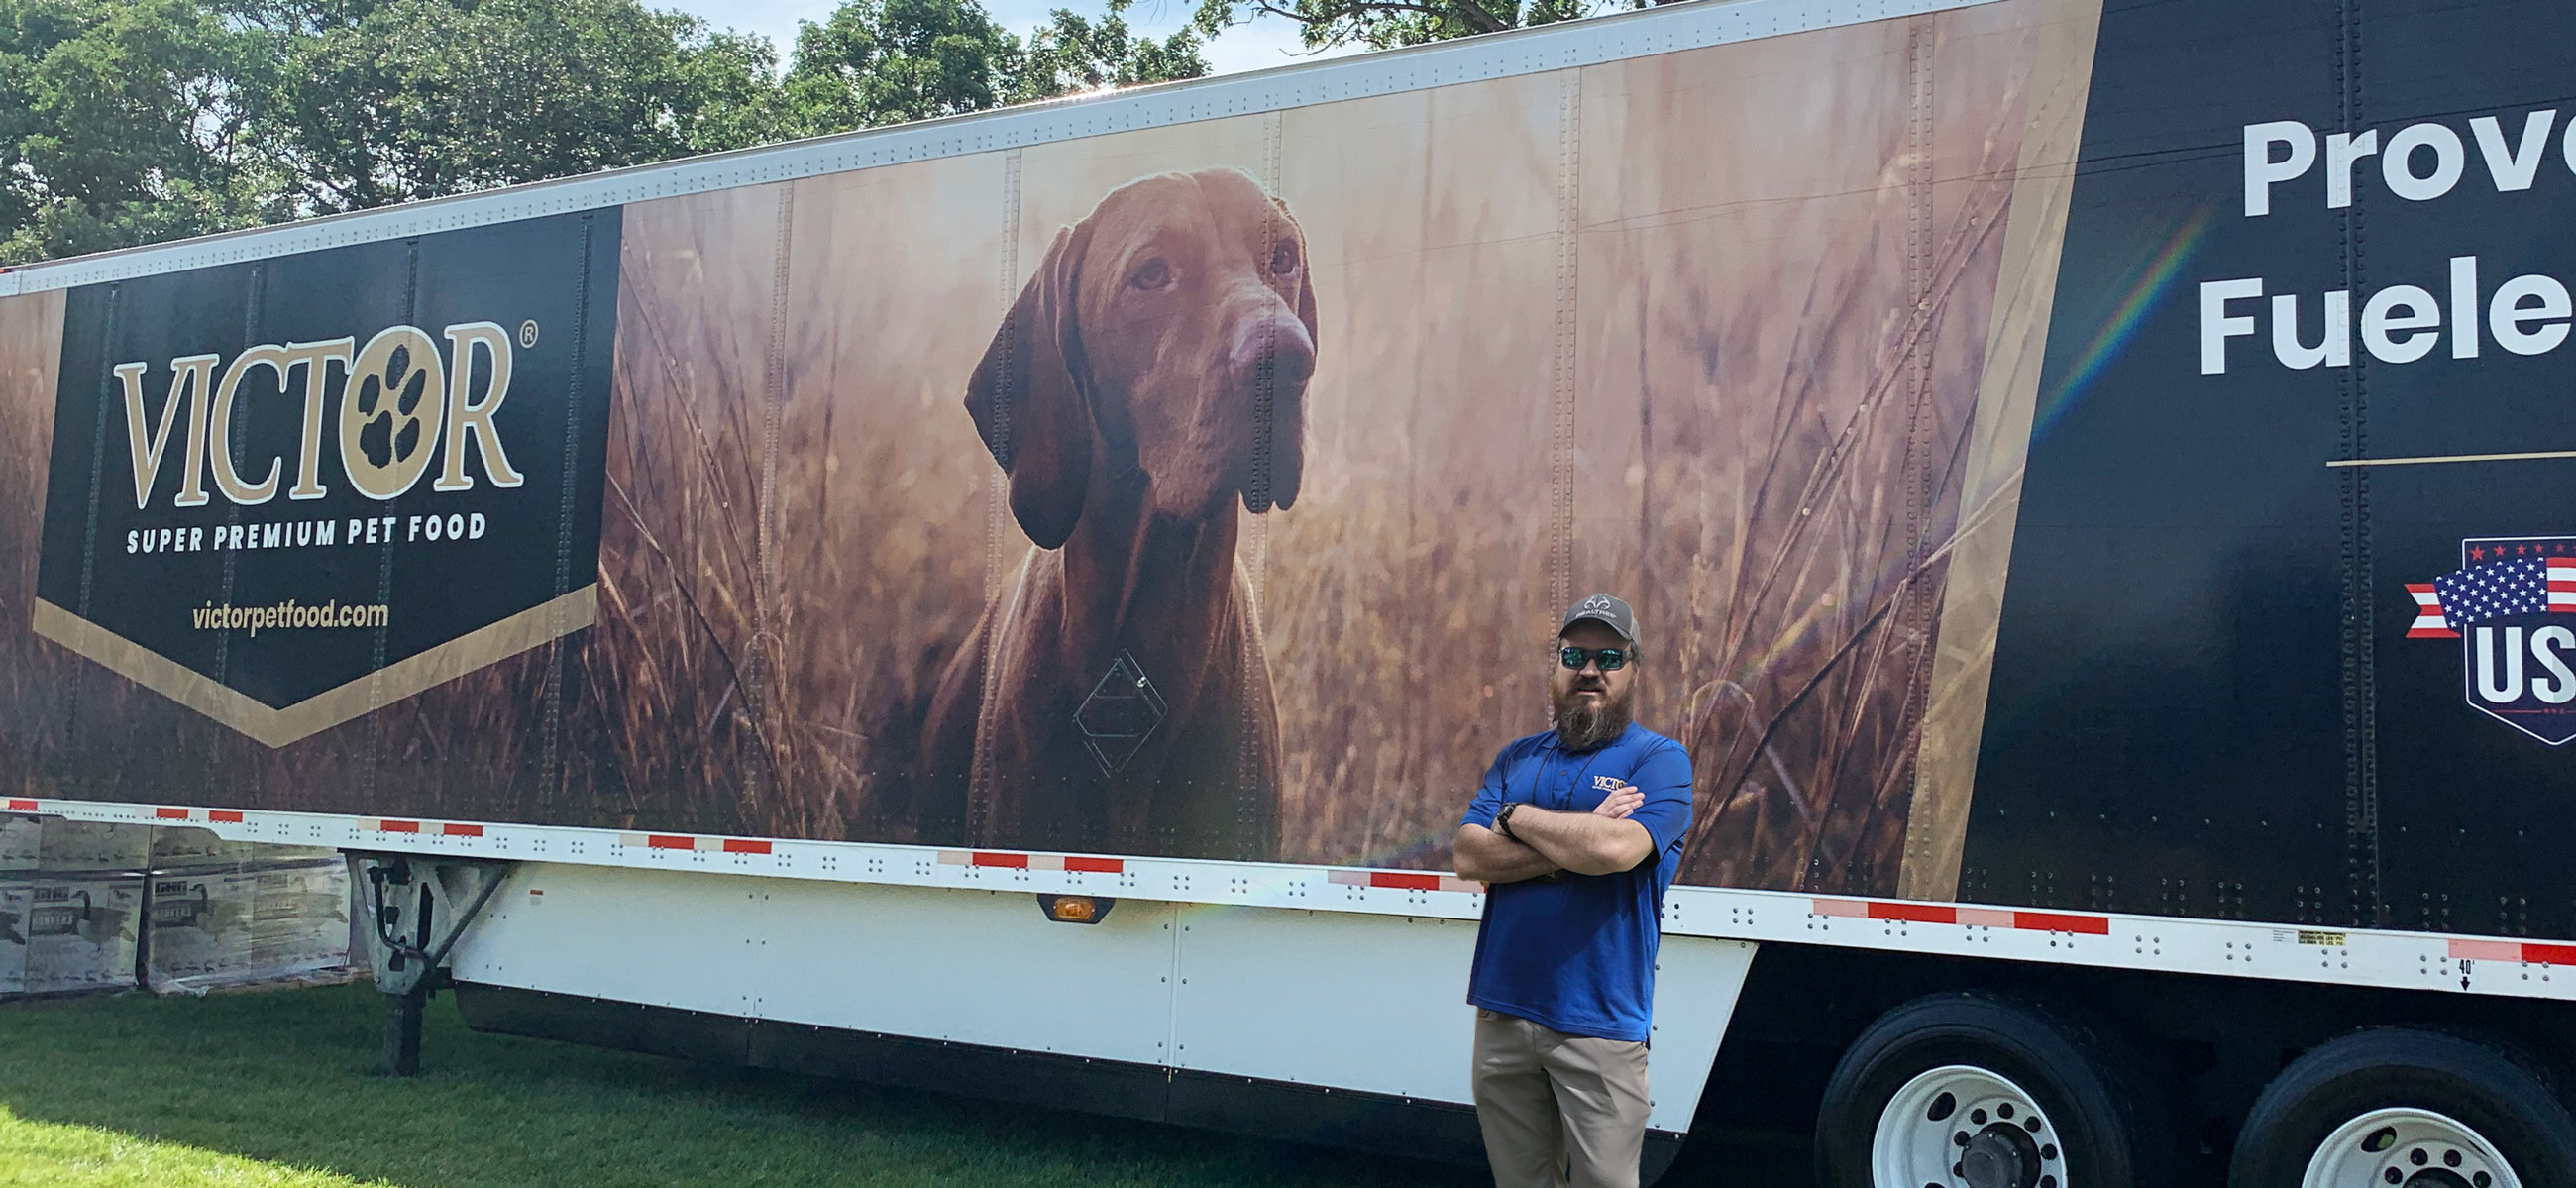 Justin and his team trust VICTOR to keep their dogs at peak performance level all season long.